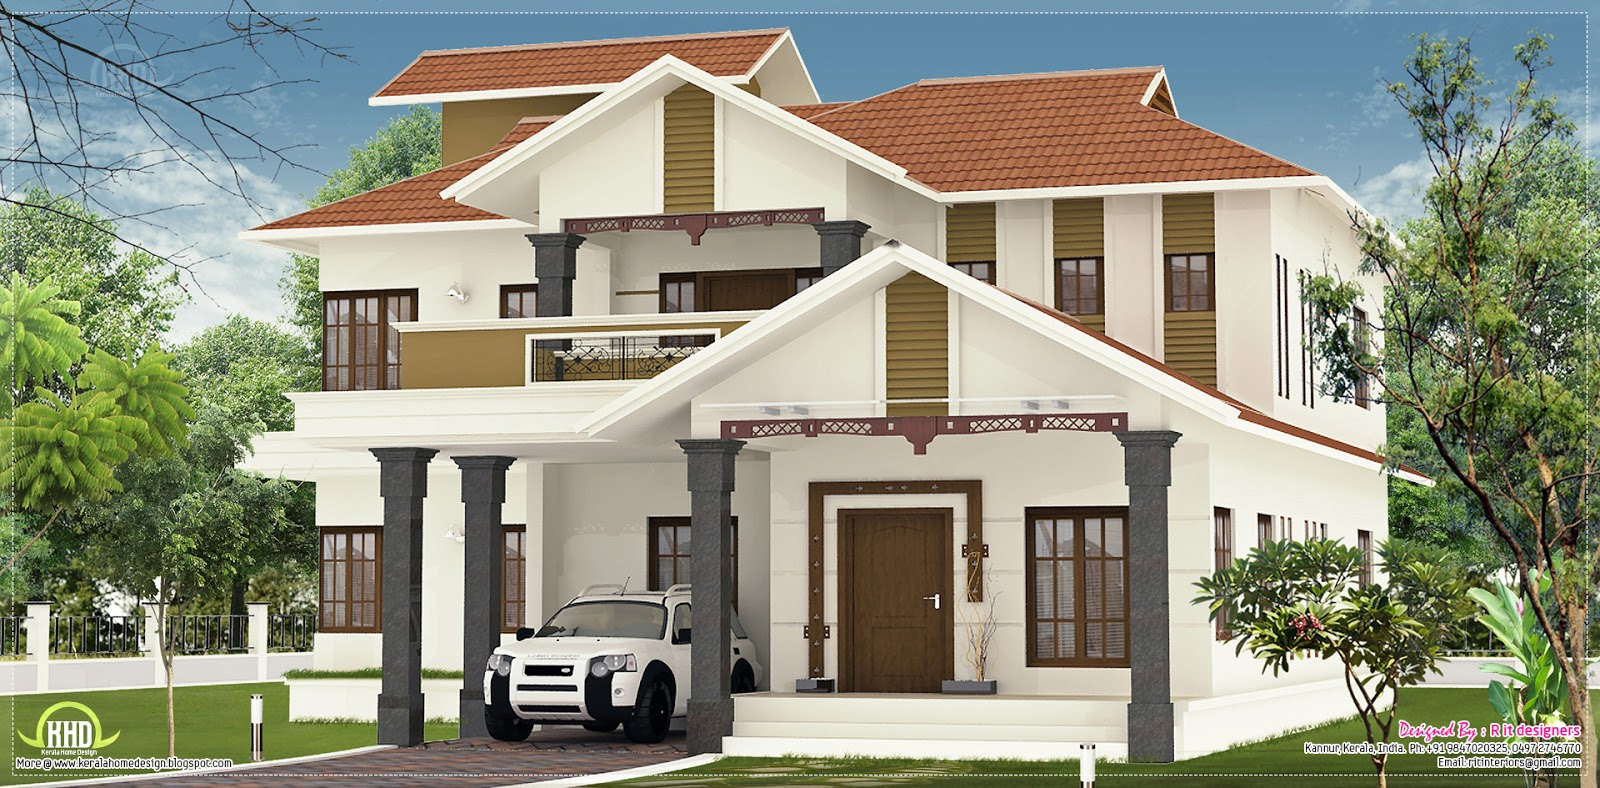 Nice villa elevation design in 2600 house design for Nice home design pictures